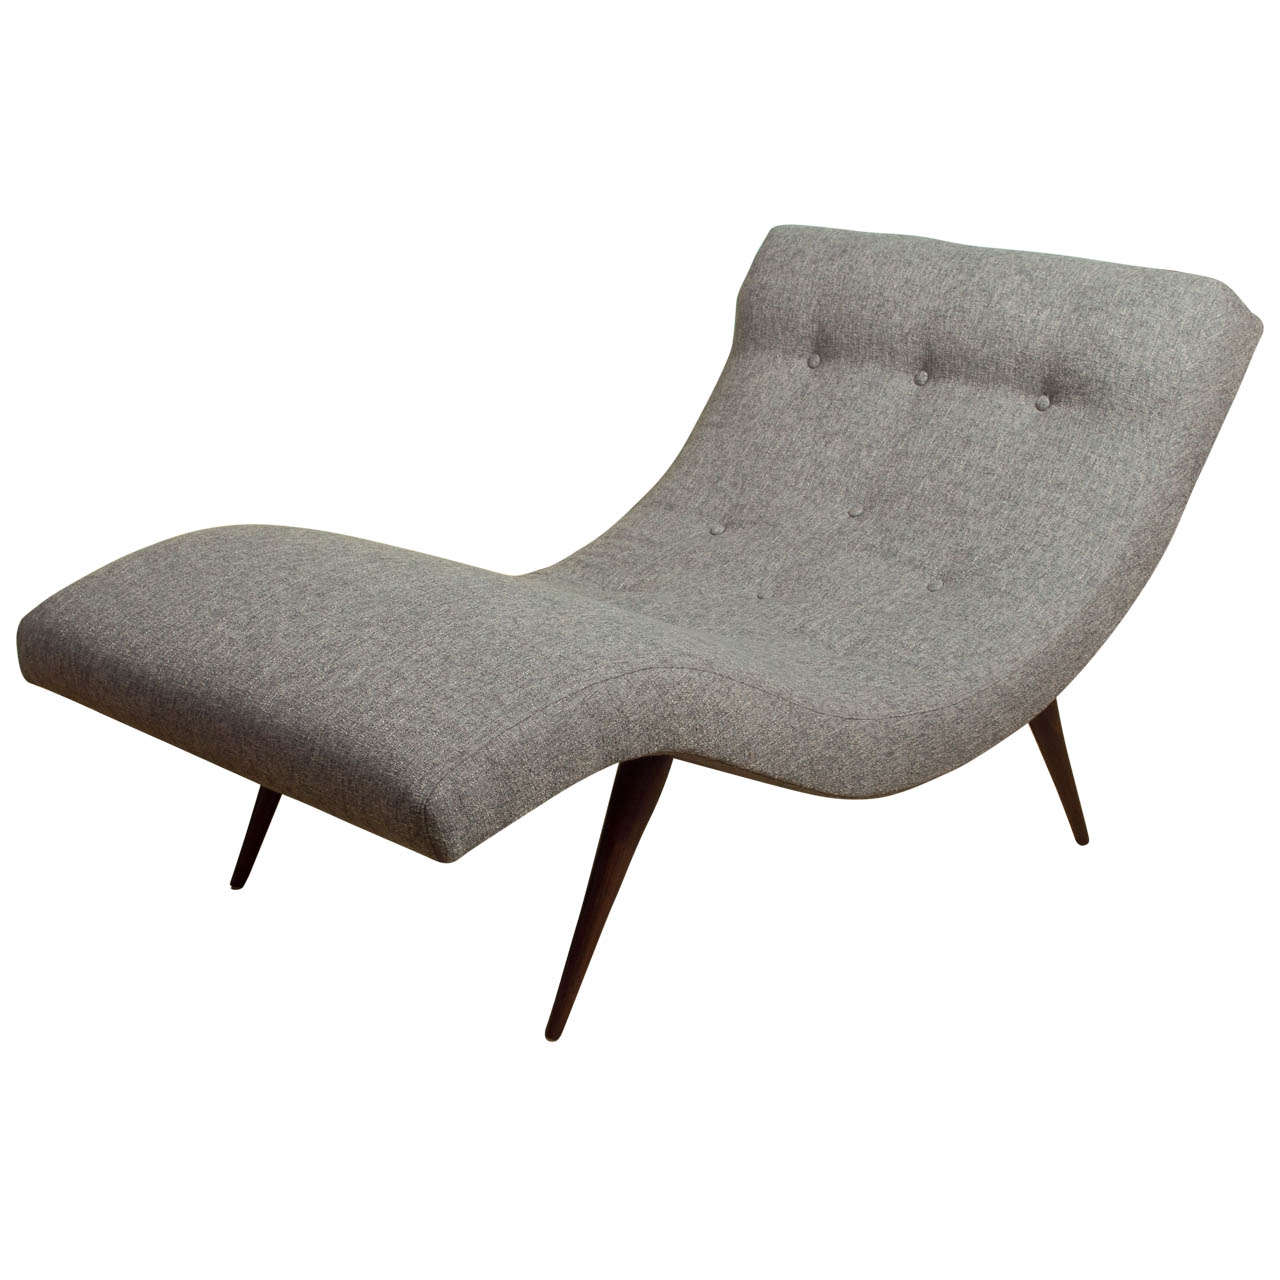 Gray adrian persall chaise lounge for craft associates at for Best price chaise lounge